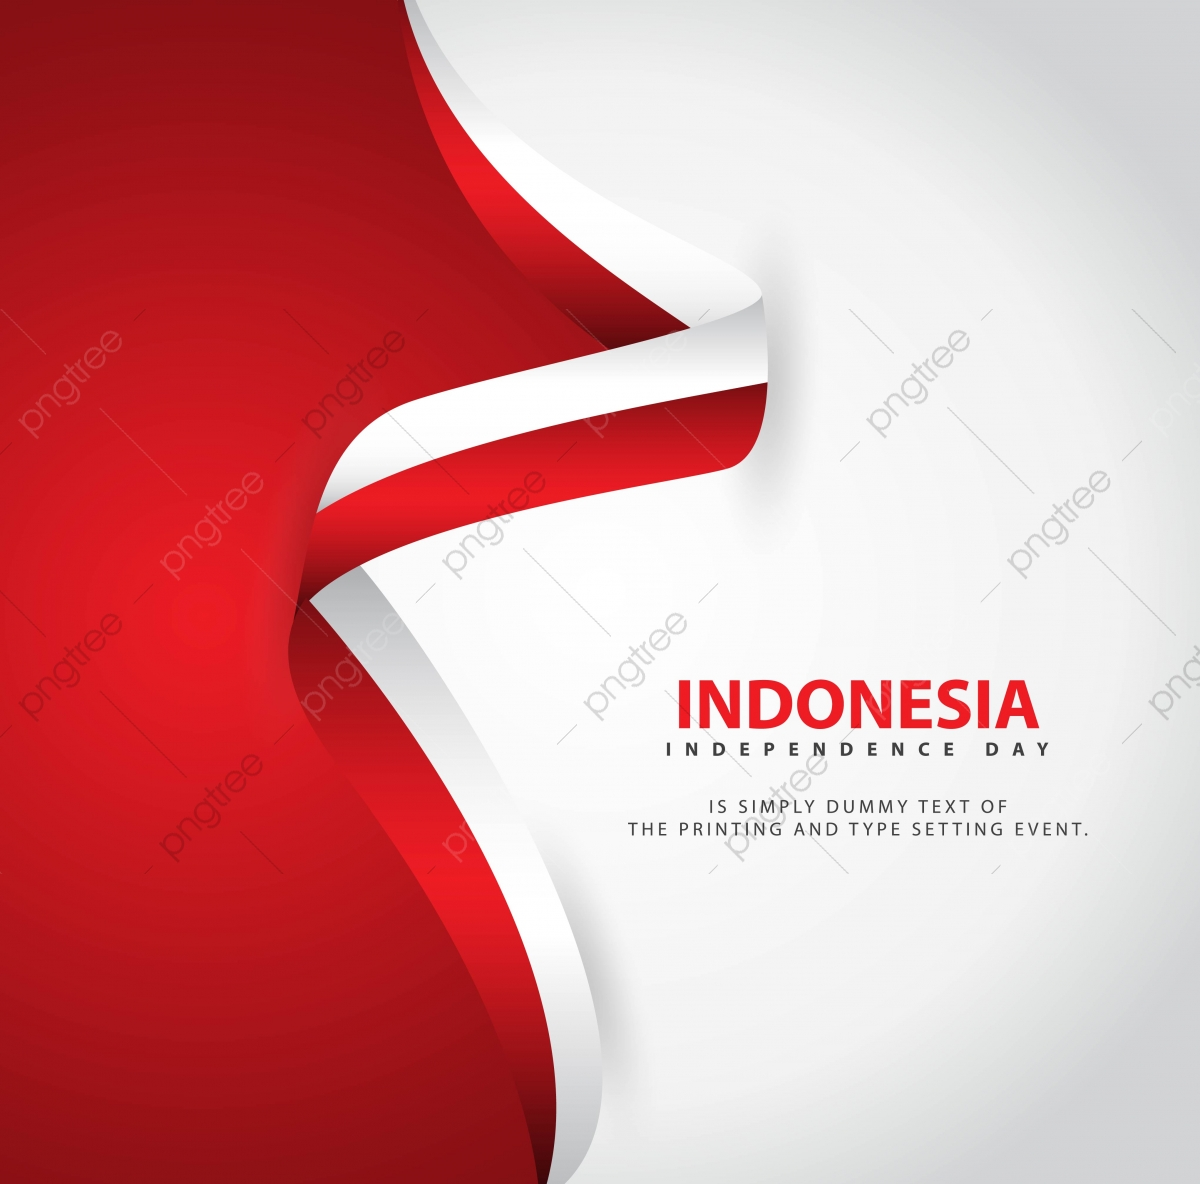 pngtree indonesia independence day vector template design illustration png image 4033669